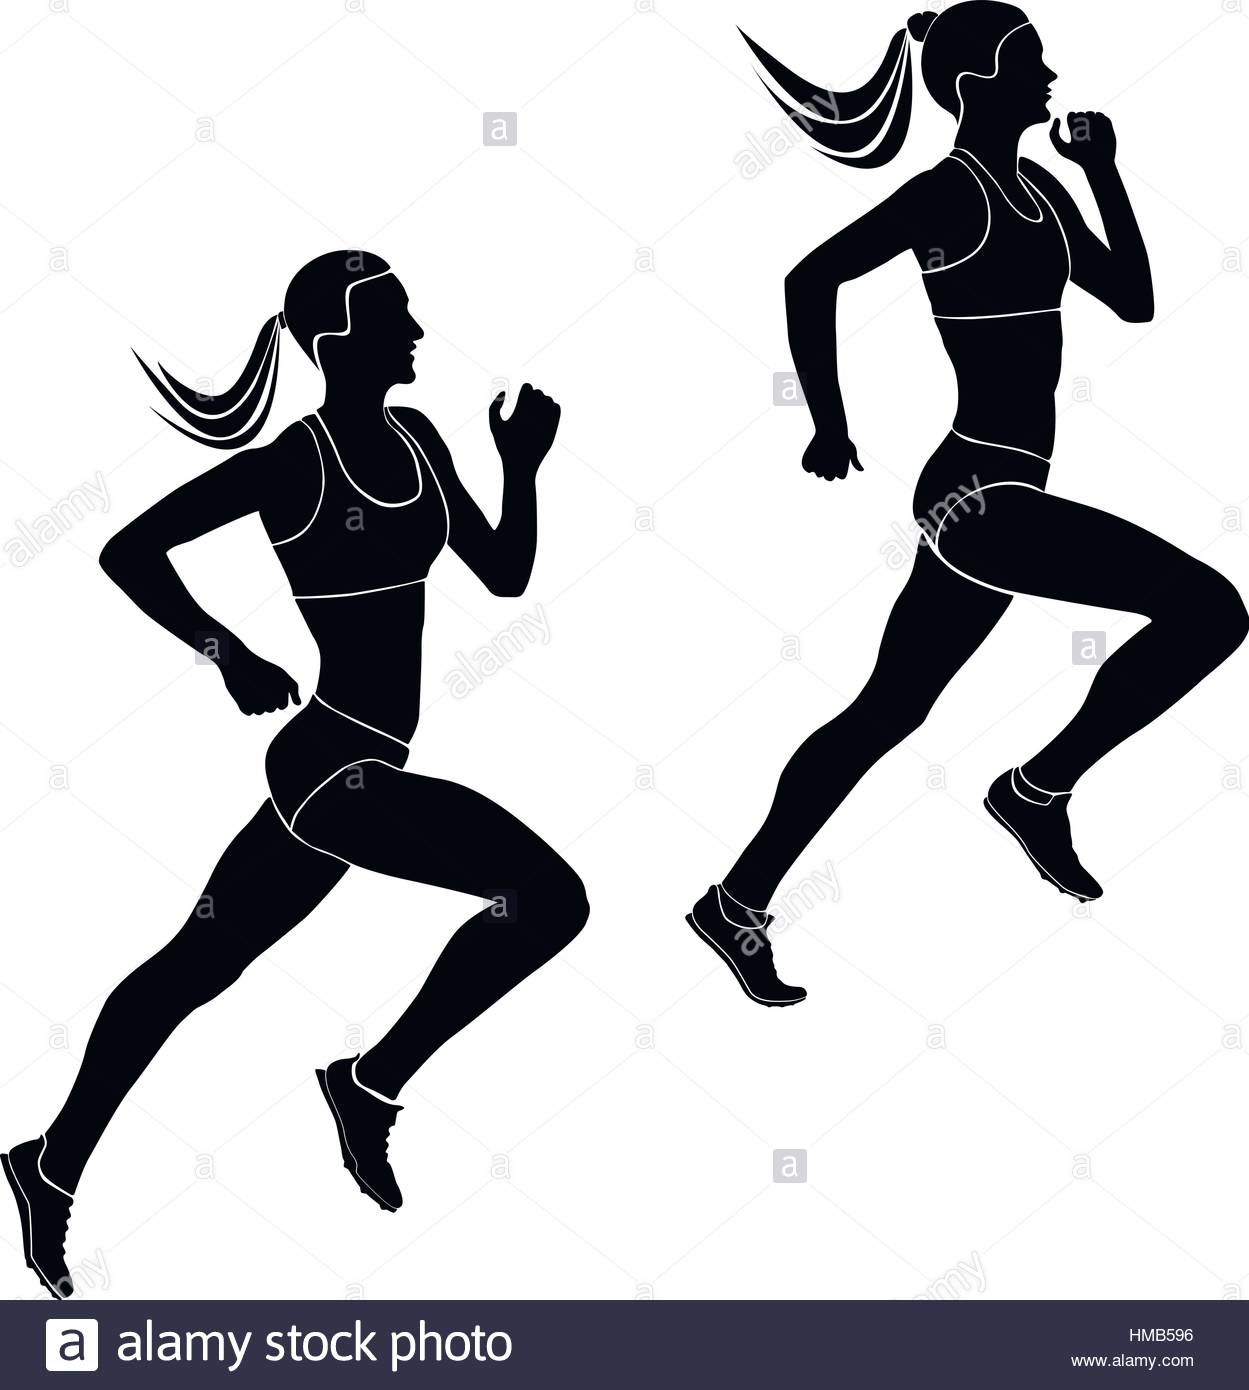 1249x1390 Two Women Athletes Runners Running Competition Black Silhouettes